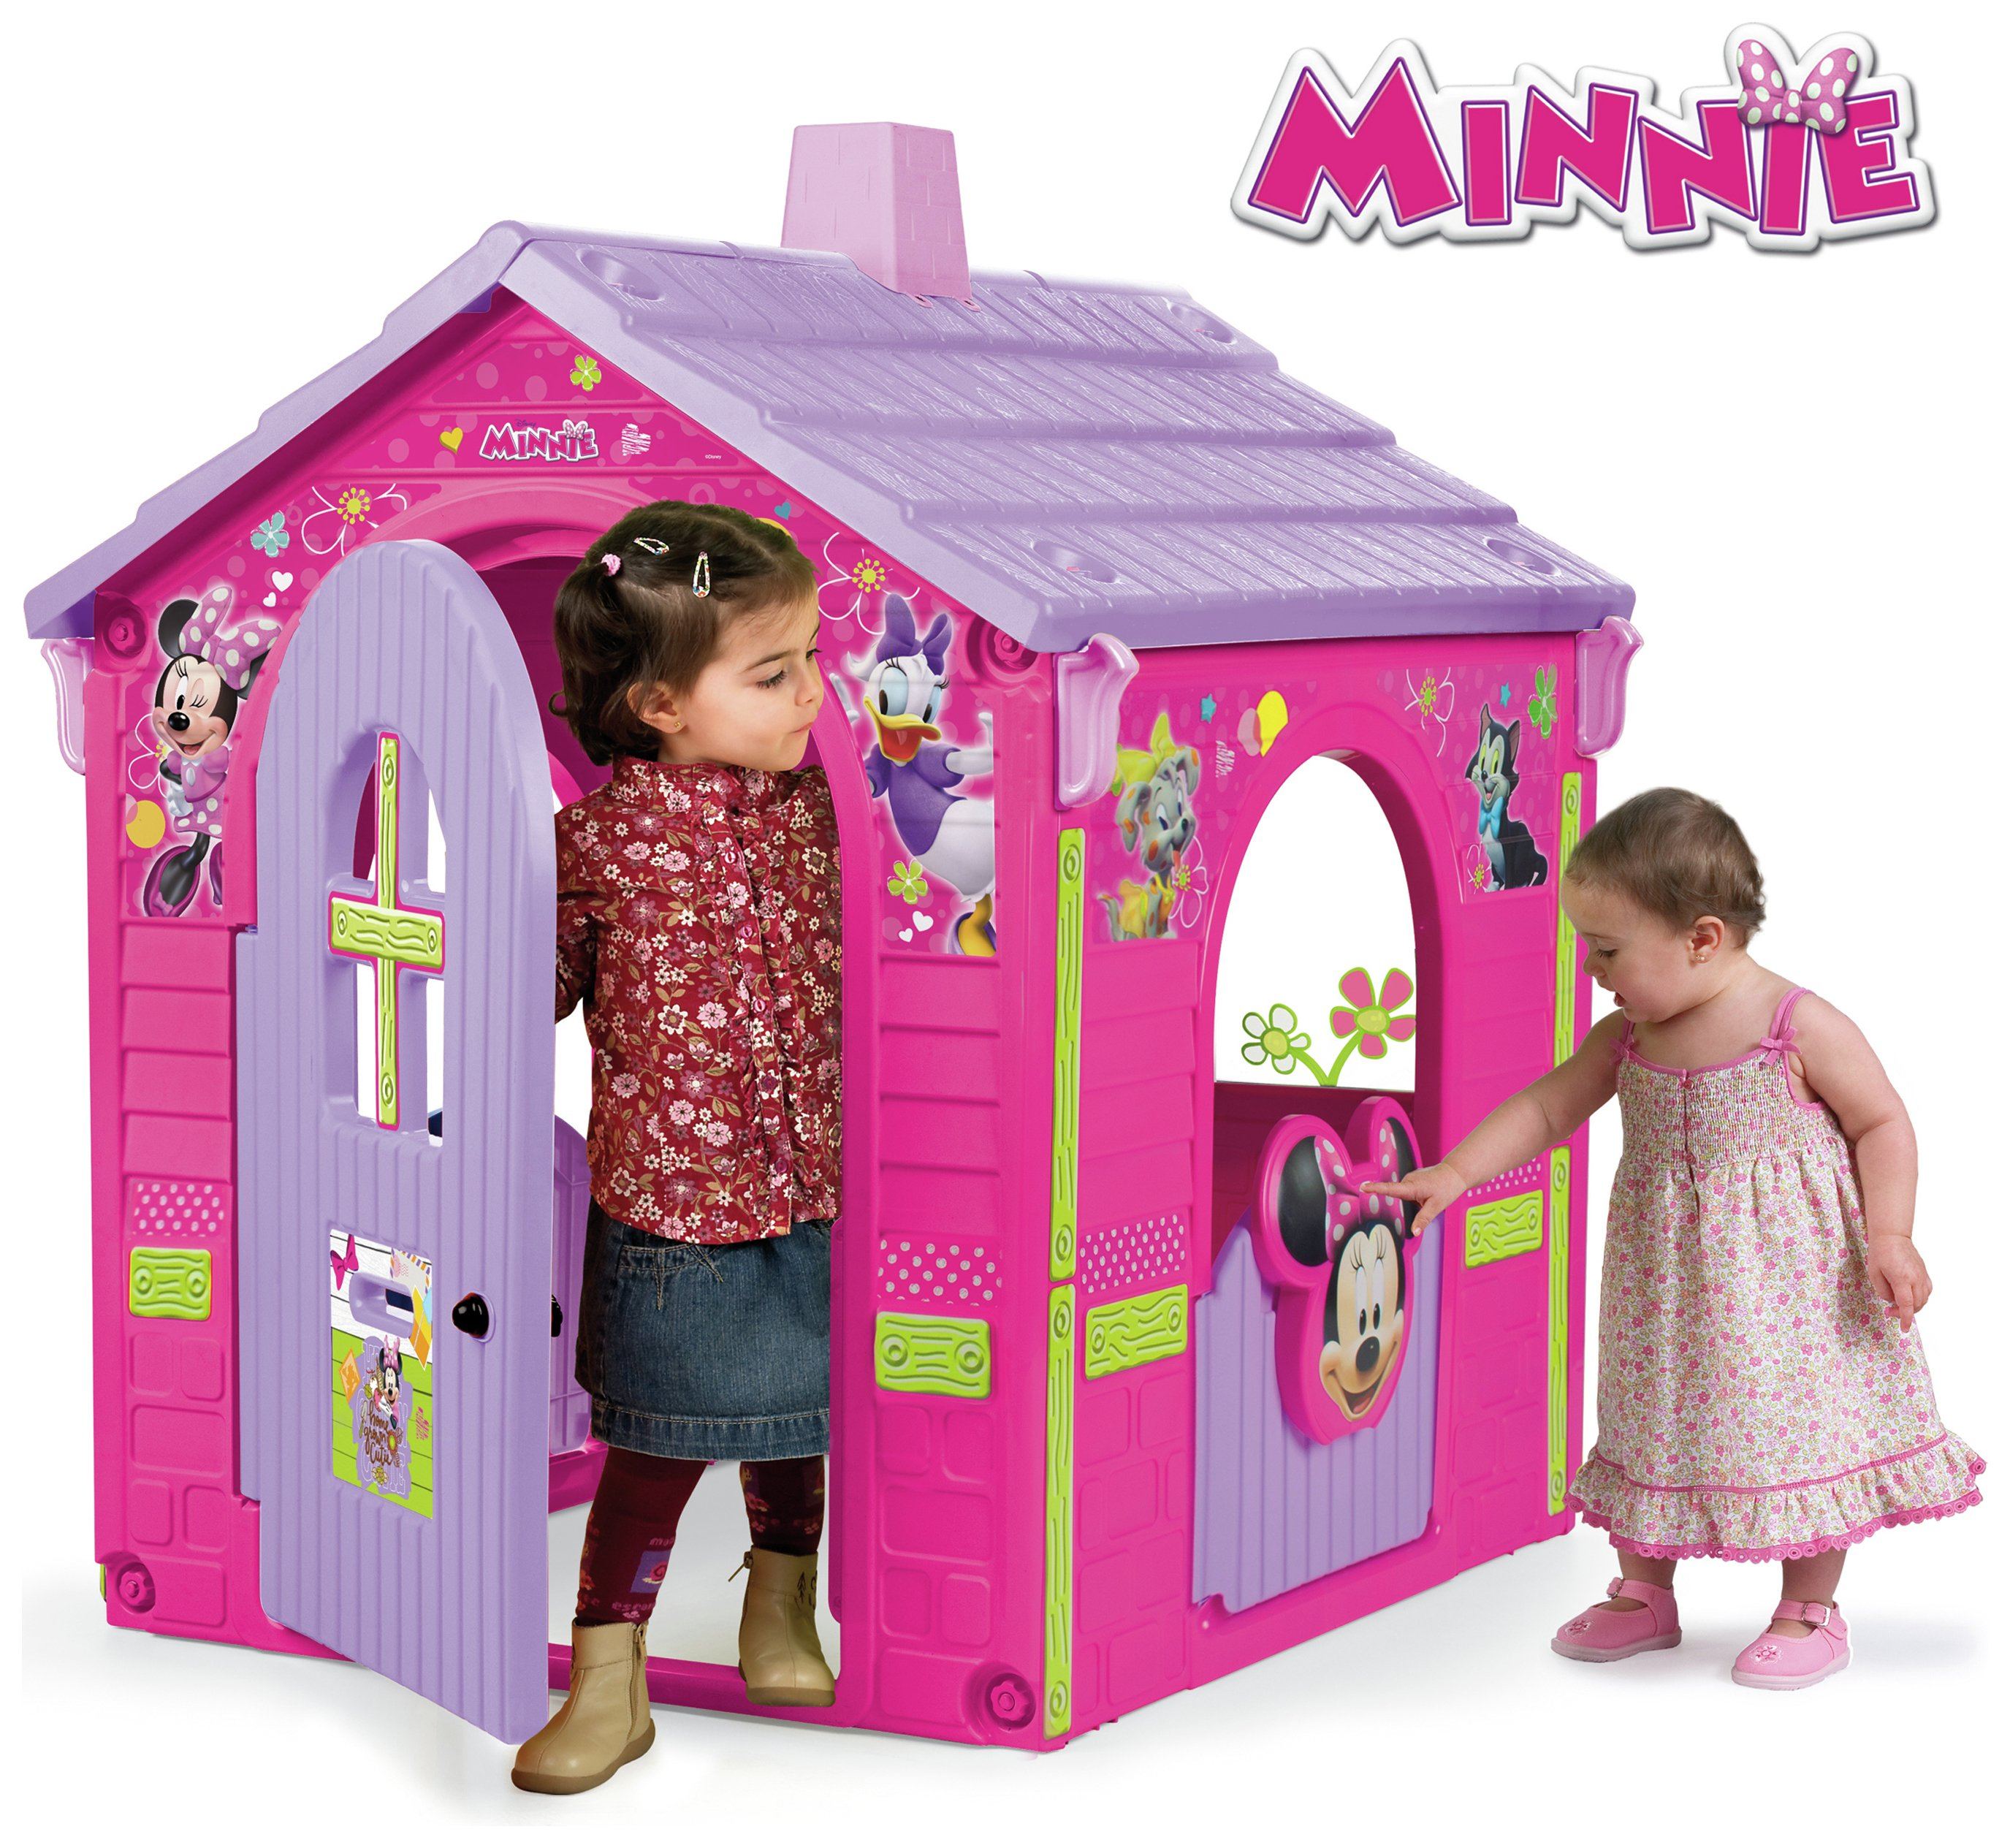 Minnie Mouse Play House.